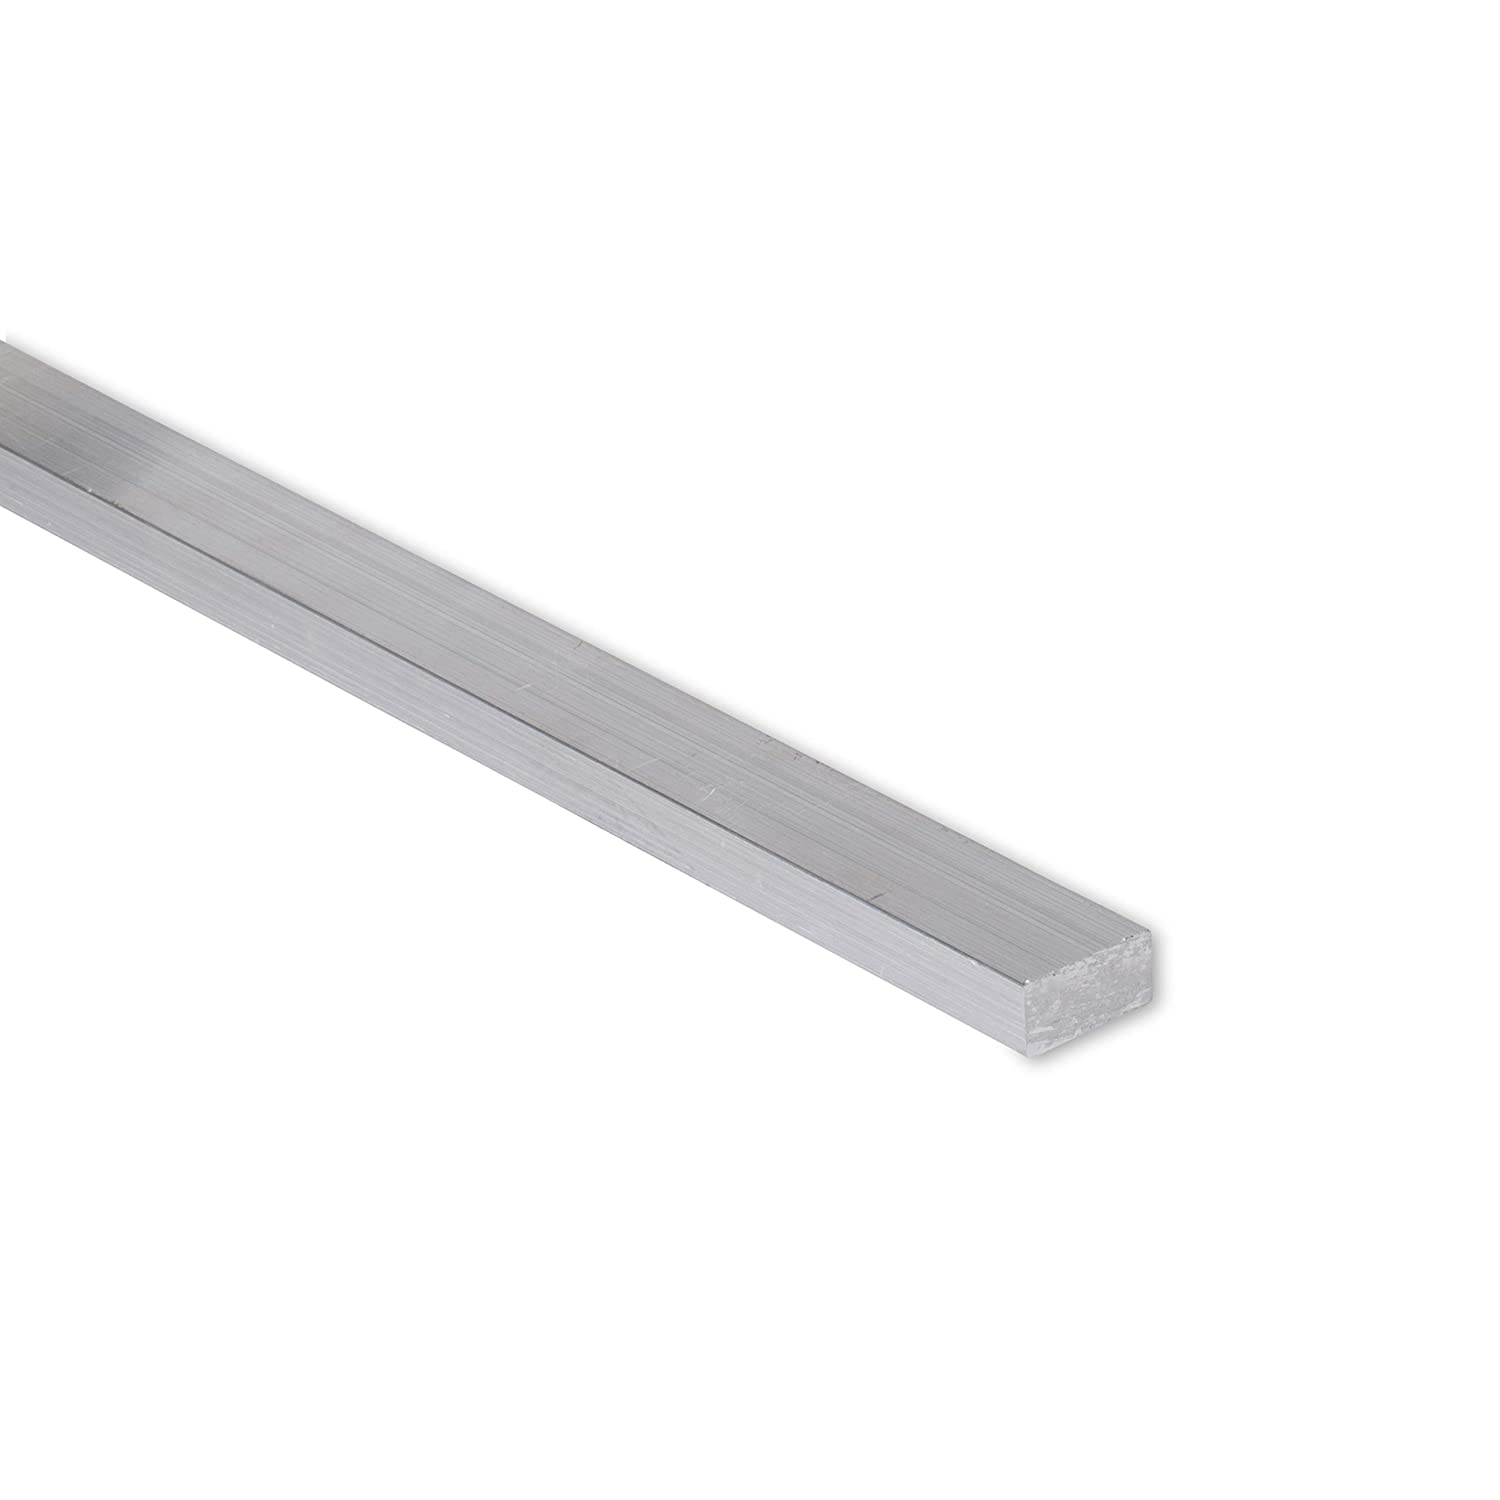 "6061 Plate 8/"" Length 0.375/"" T6511 Mill Stock 3//8/"" x 4/"" Aluminum Flat Bar"